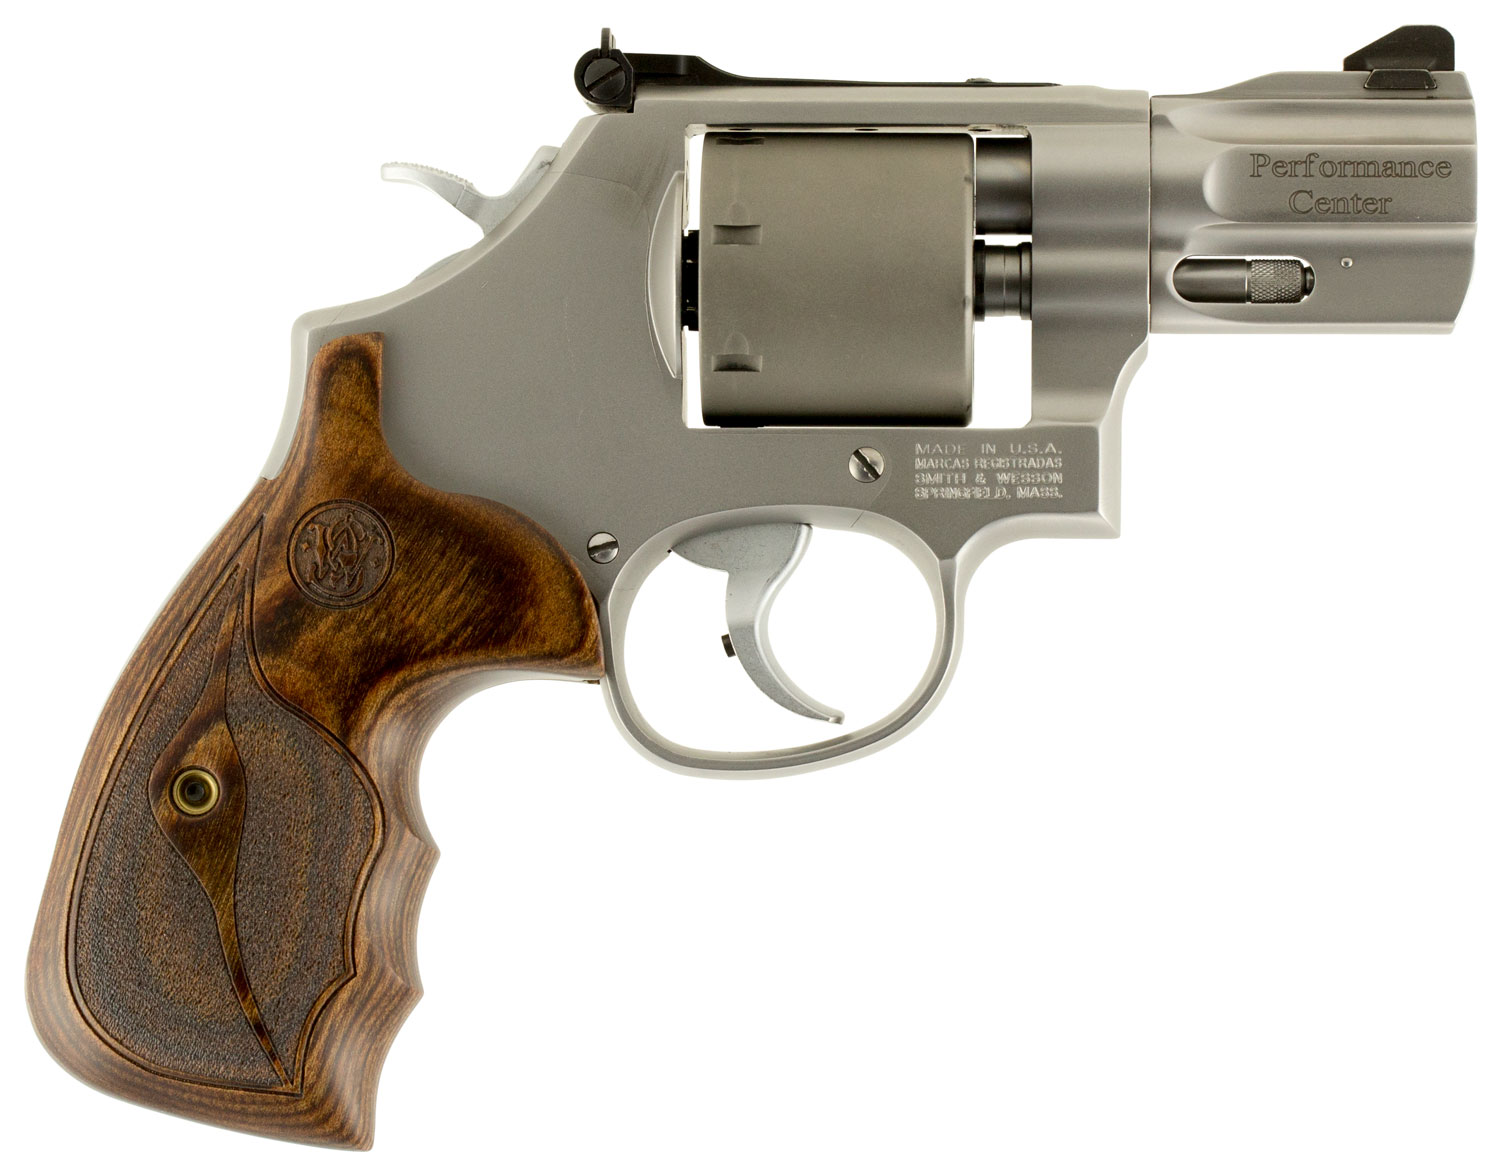 Smith & Wesson 10227 986 Performance Center Single/Double 9mm 2.5